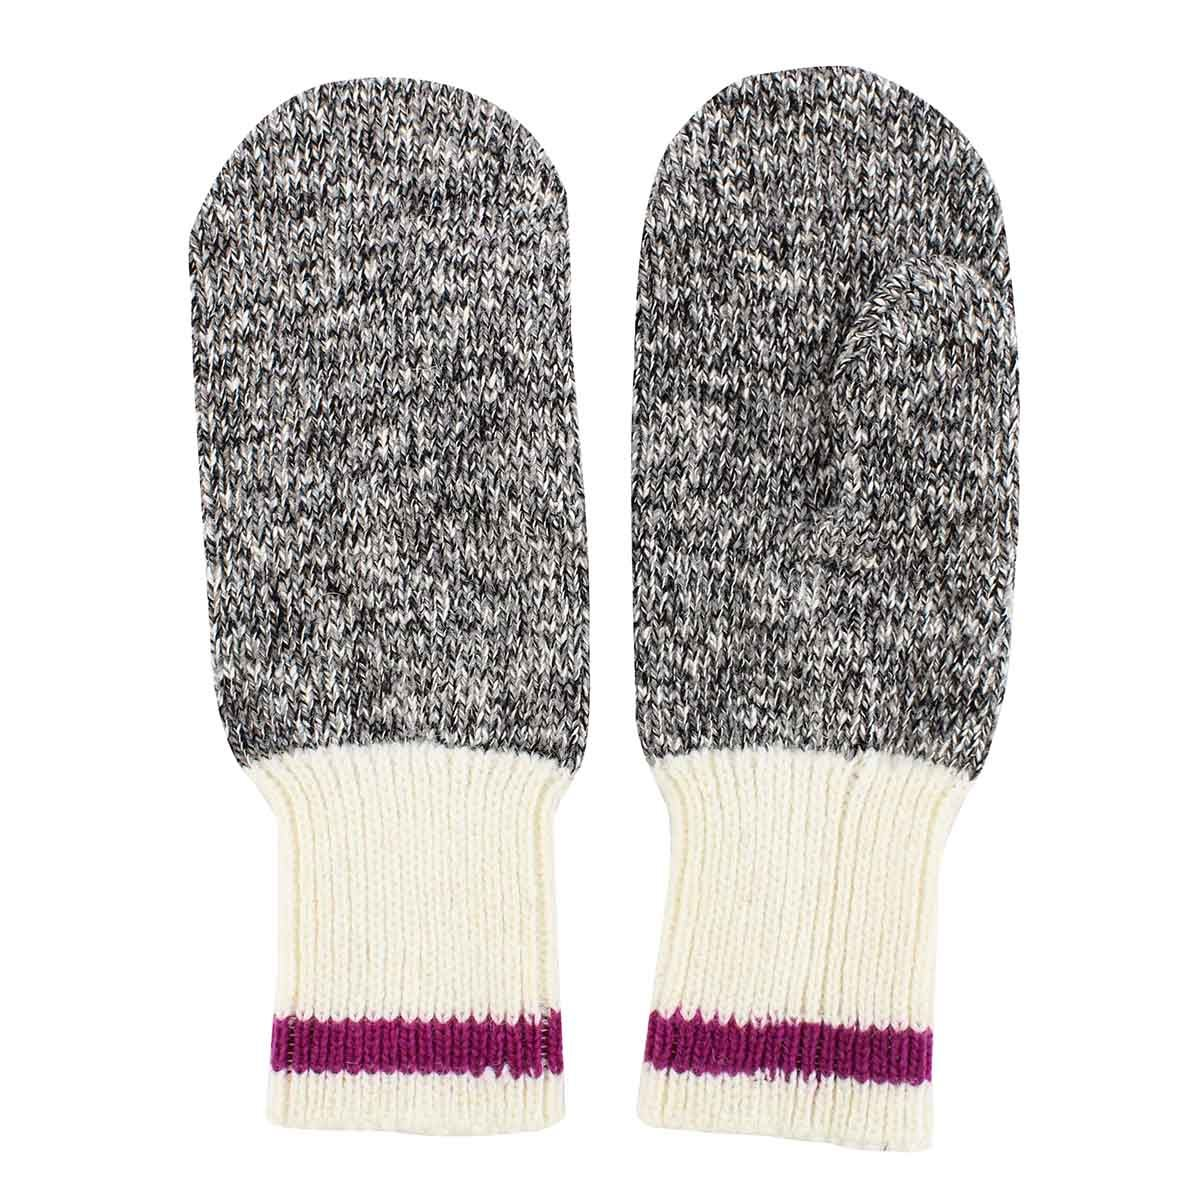 Lds Duray marled grey/ pink mitten